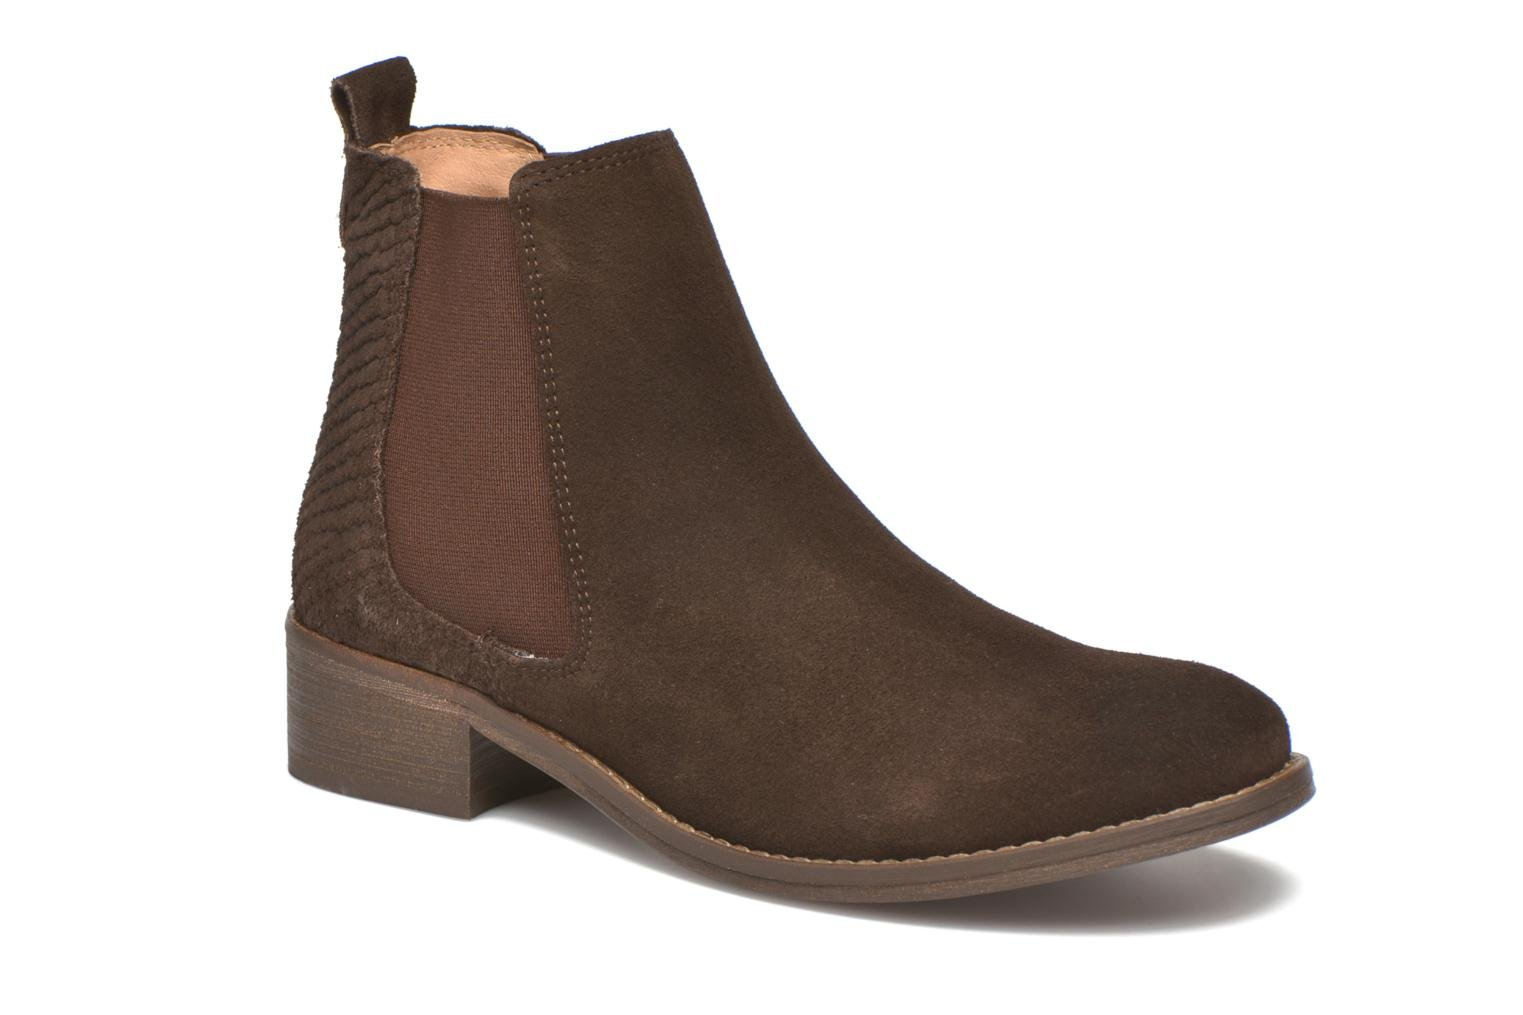 Boots Elastiques by Bensimon